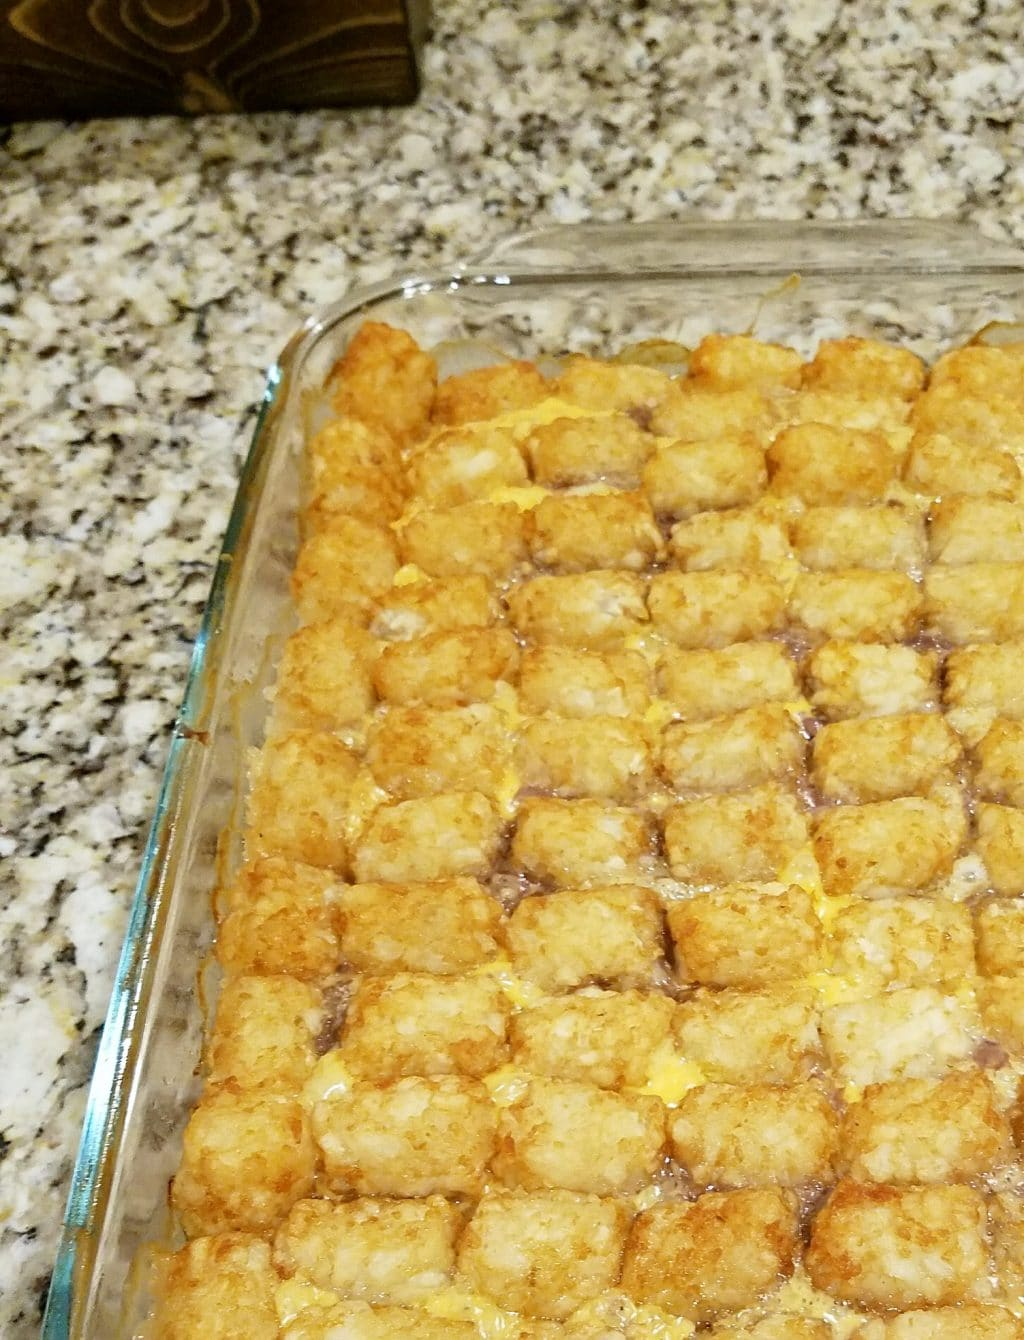 This easy tater tot casserole just calls for three main ingredients--tater tots, ground beef, and cheese! Customize it with your favorite add-ins